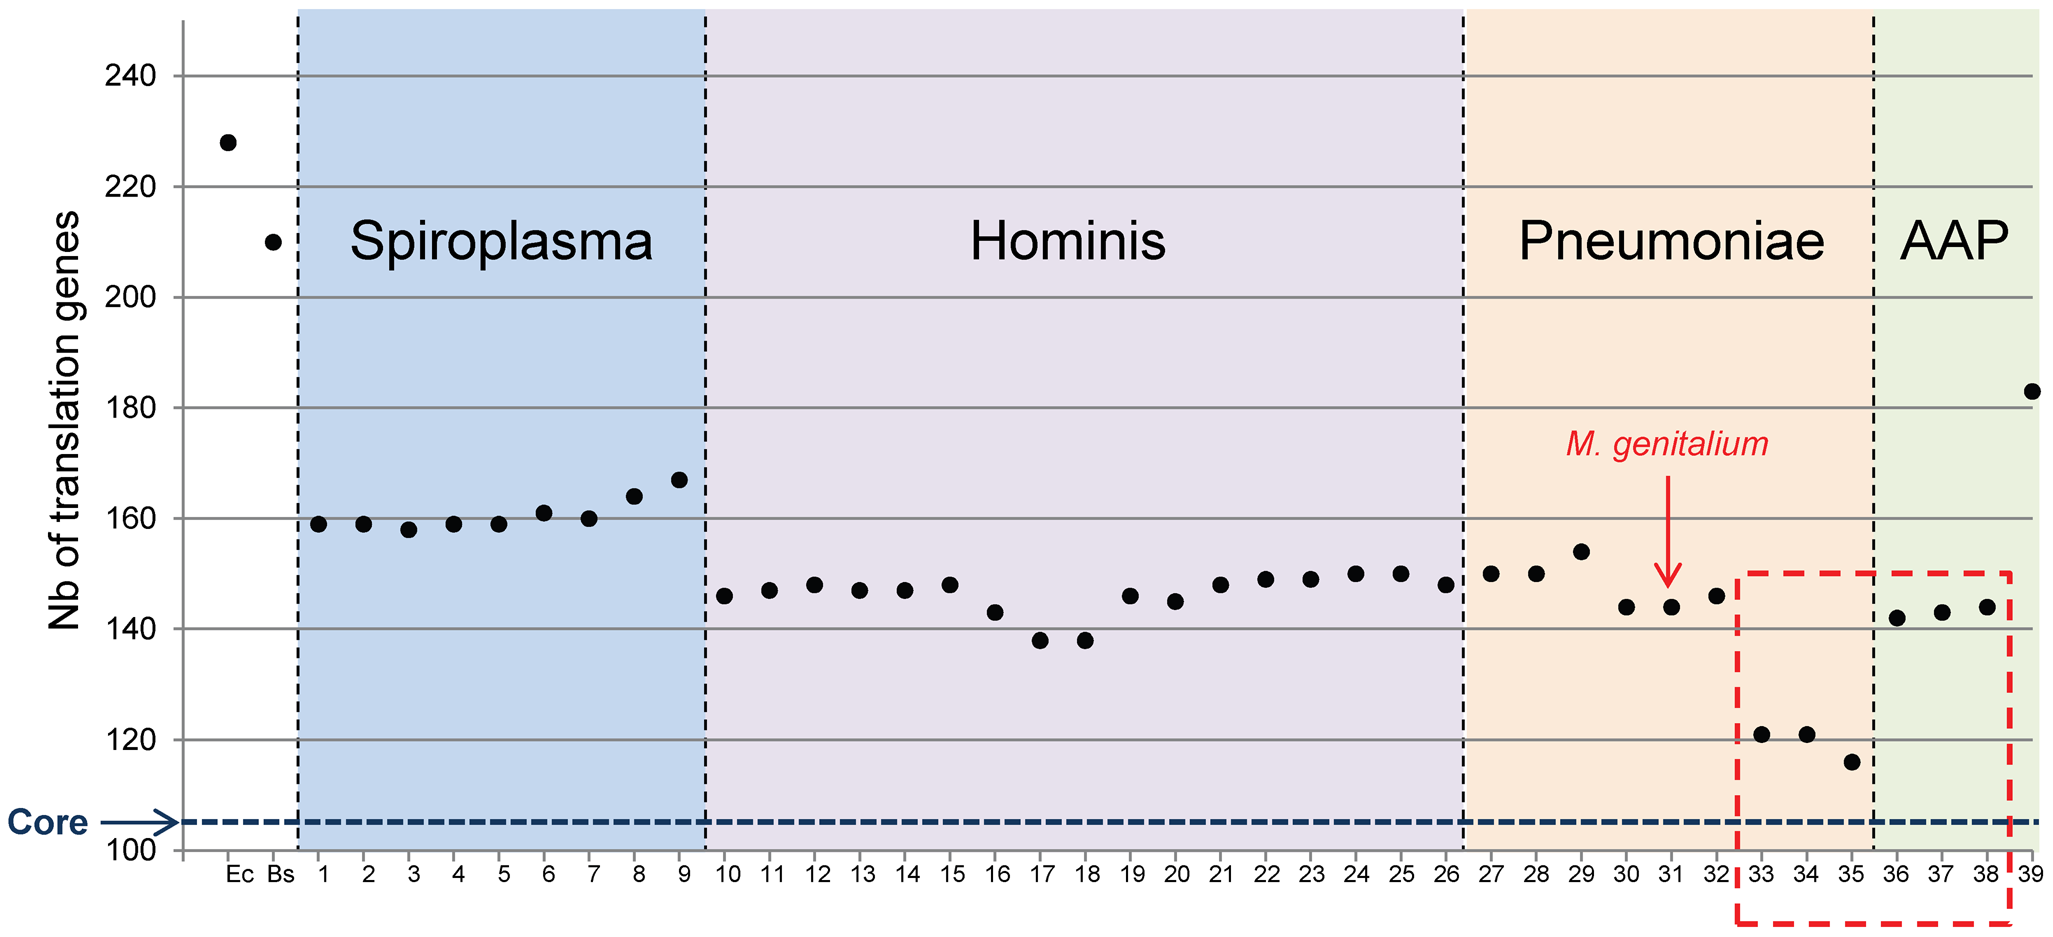 Total number of proteins involved in translation for each <i>Mollicutes</i> species.